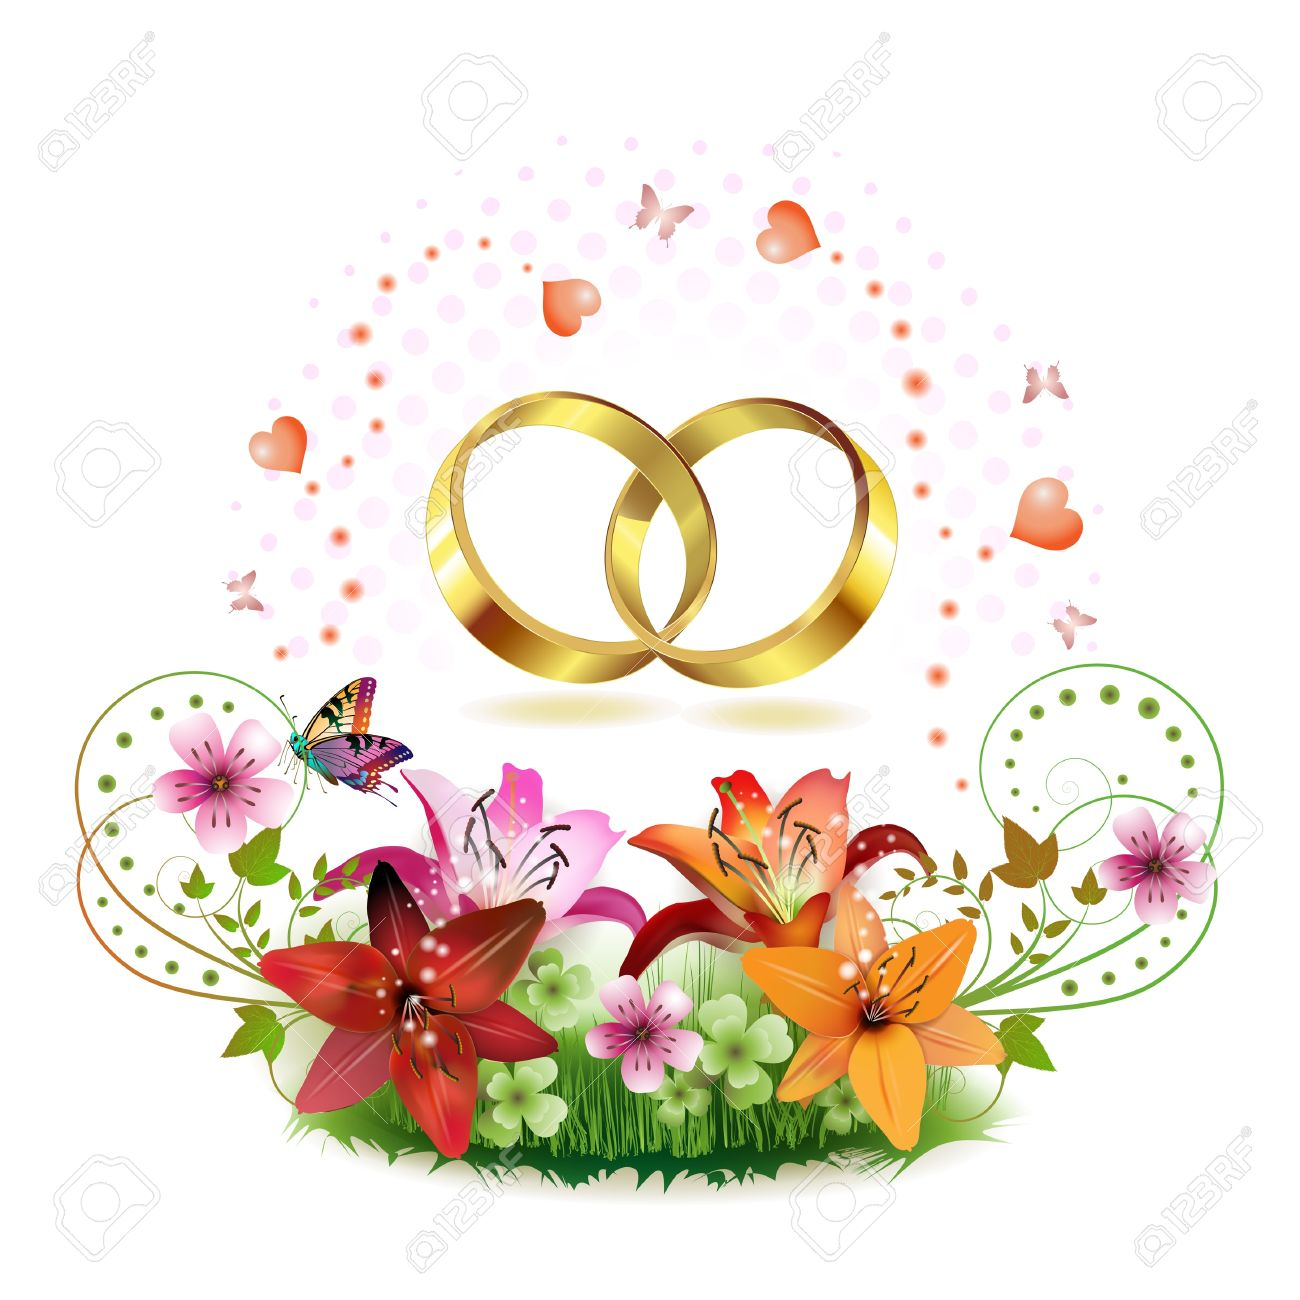 Two Wedding Ring With Hearts And Decorated Flowers Isolated On White Background Stock Vector